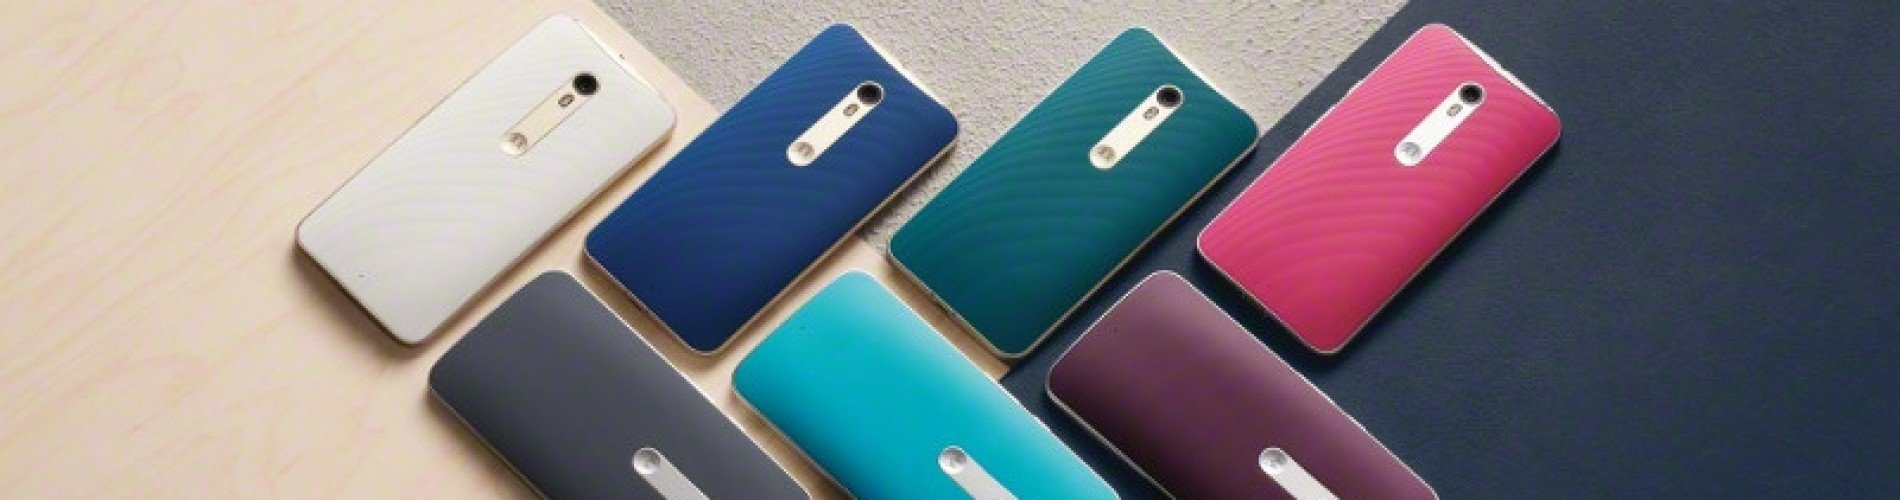 MotoMaker customization options for the Moto X Style